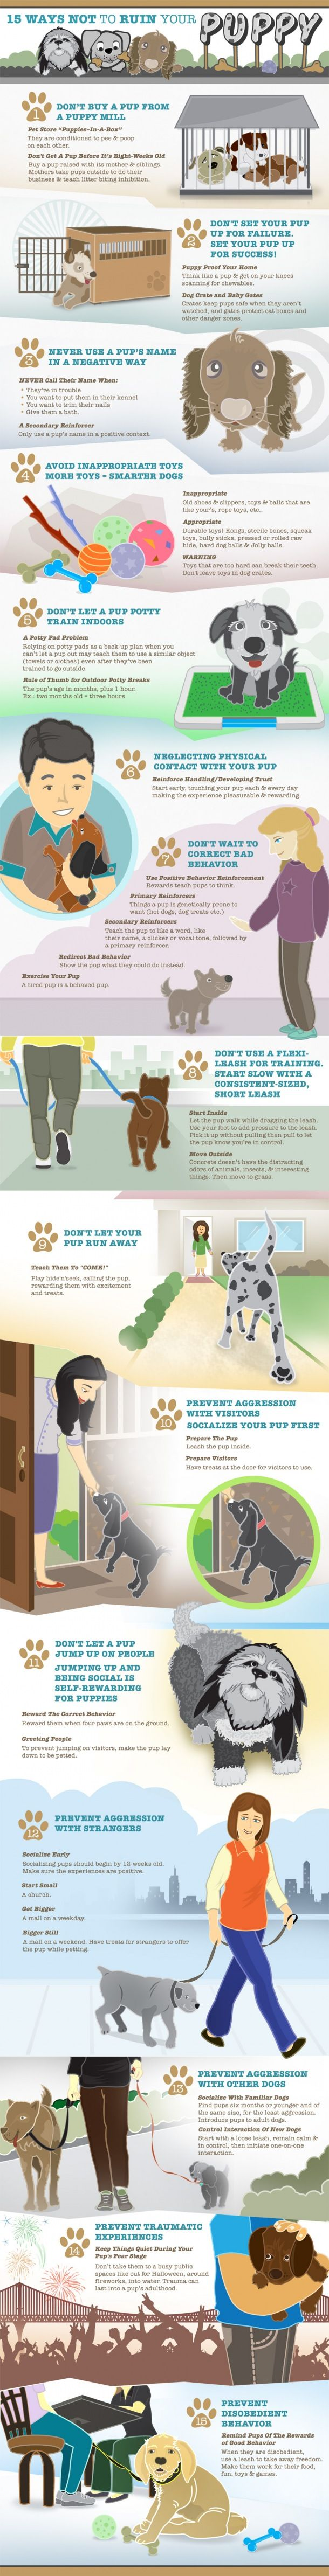 15 Ways Not To Ruin Your Puppy!  #Infographic    This site, infographiclist.com, has a Pin button next to this image, so it is okay to Pin it.